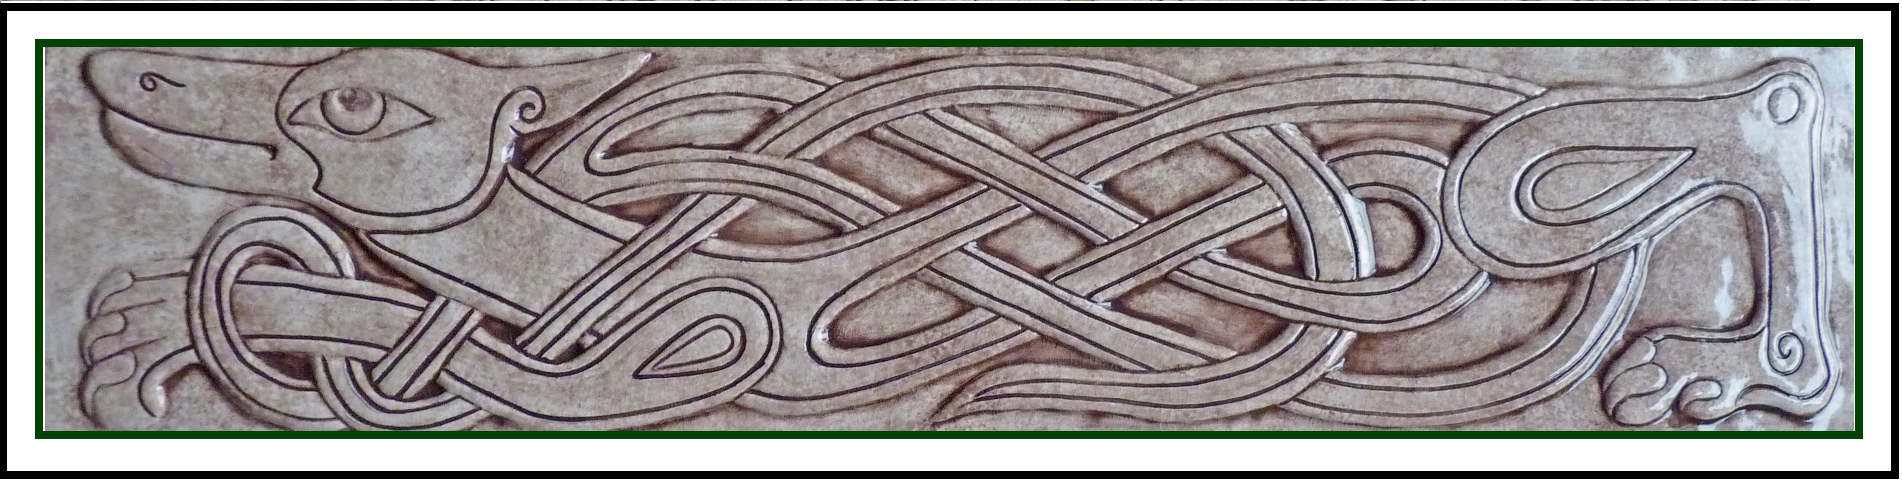 CELTICKNOTWORK 2